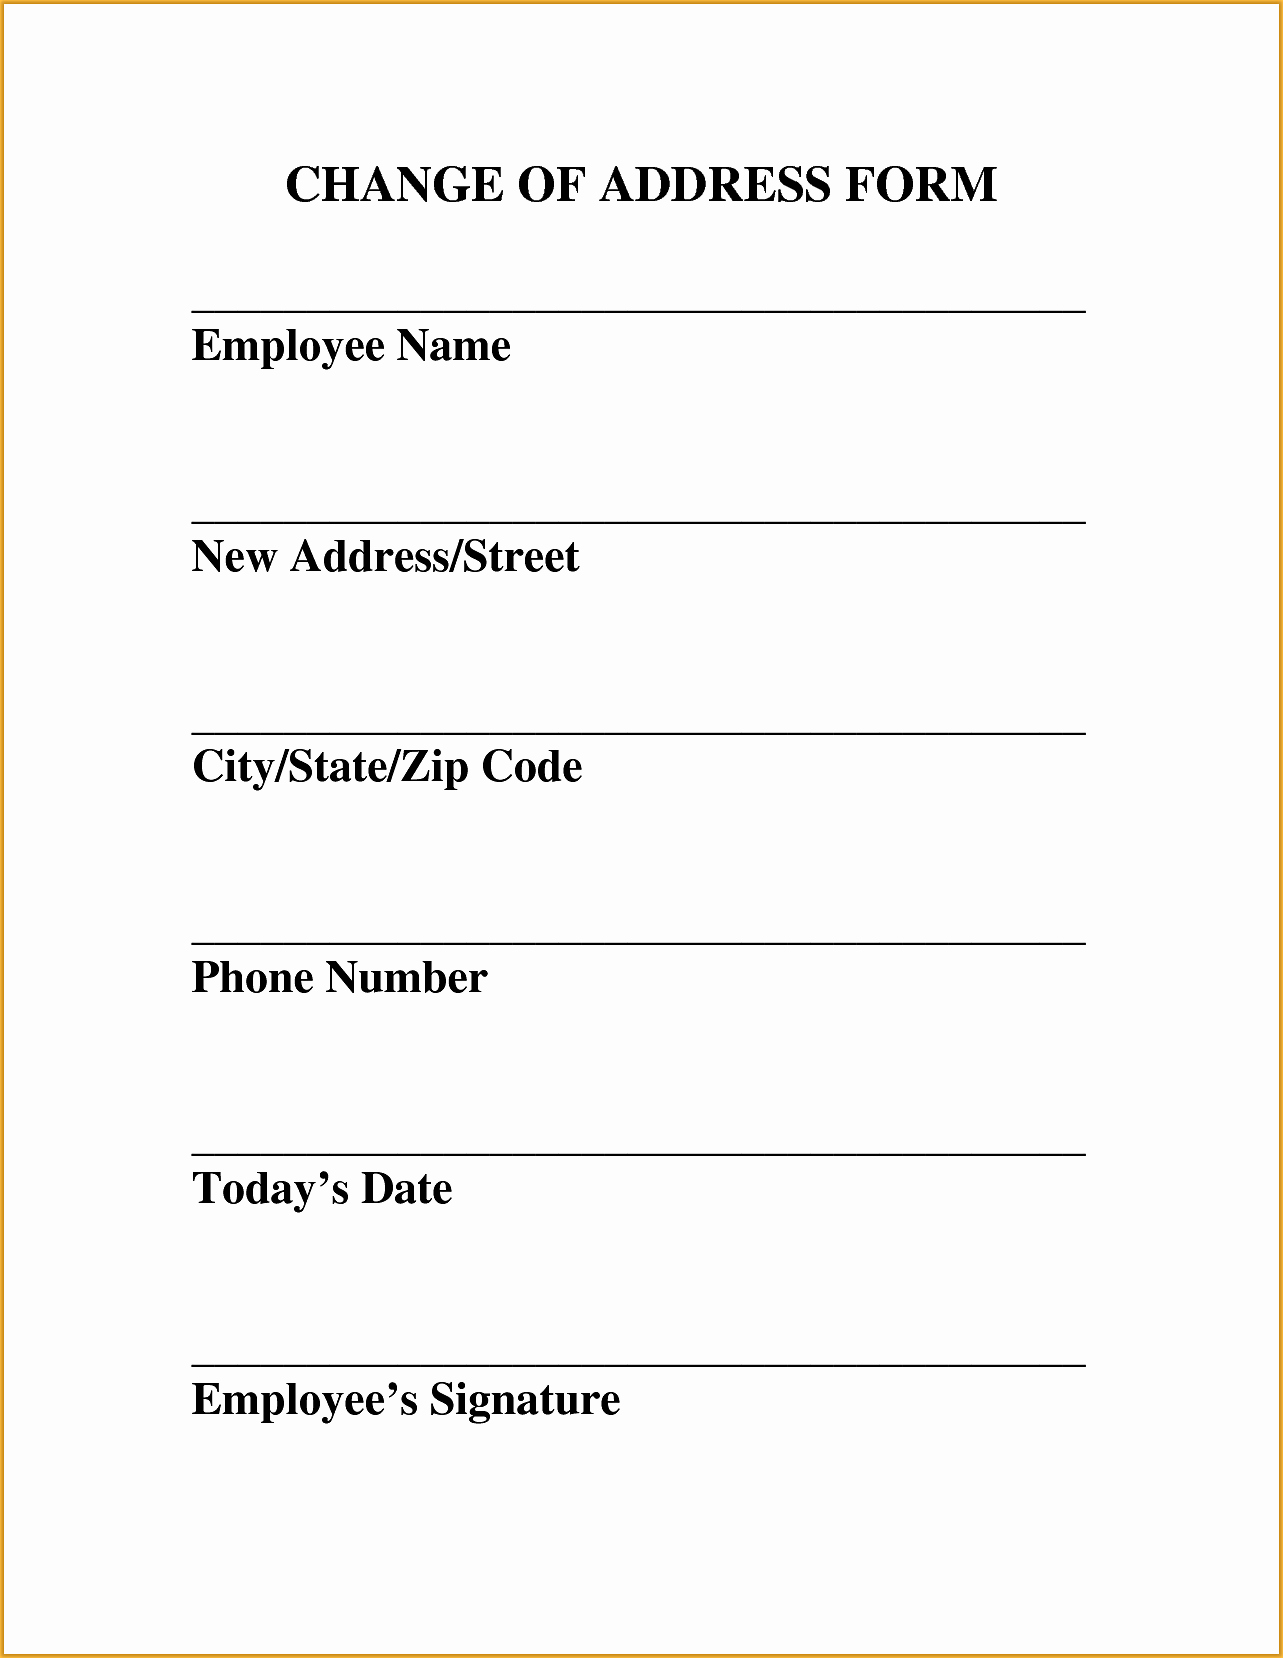 Address and Phone Number Template Fresh Name Address Phone Number Template Portablegasgrillweber